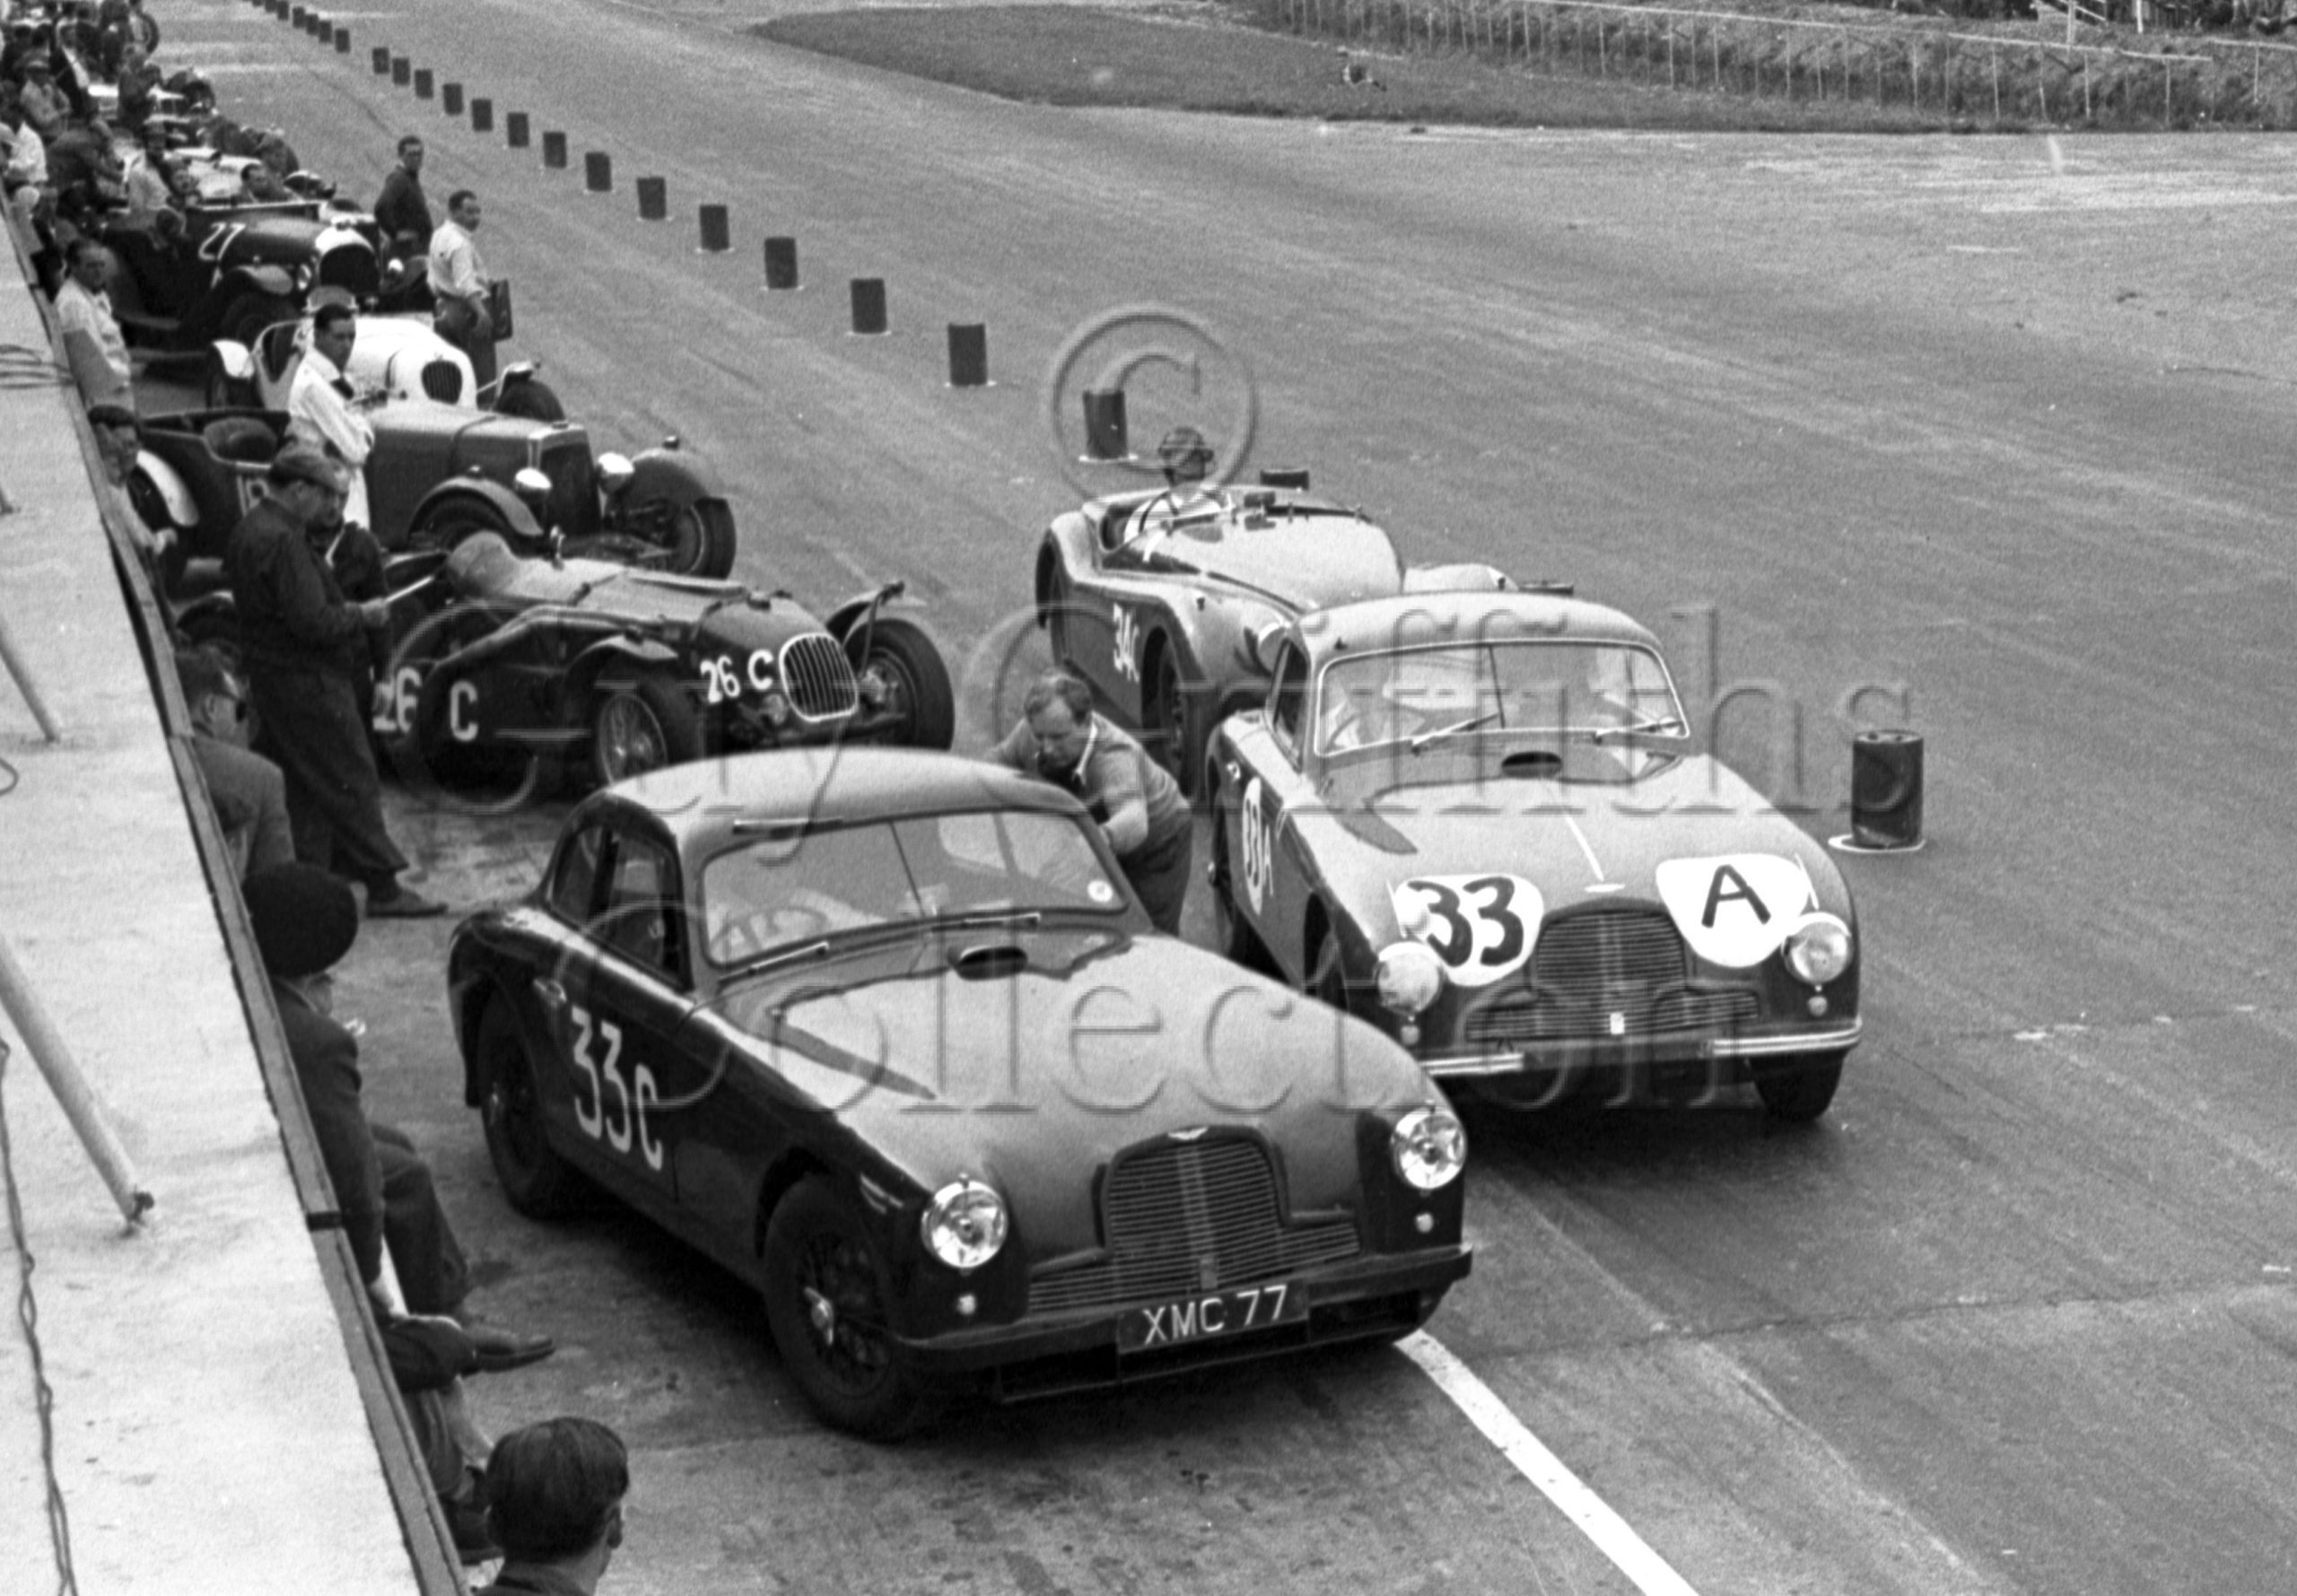 60-206–E-Thompson–P-Clark–Aston-Martin-DB2-2580cc–Silverstone–30-08-1952.jpg - Guy Griffiths Collection